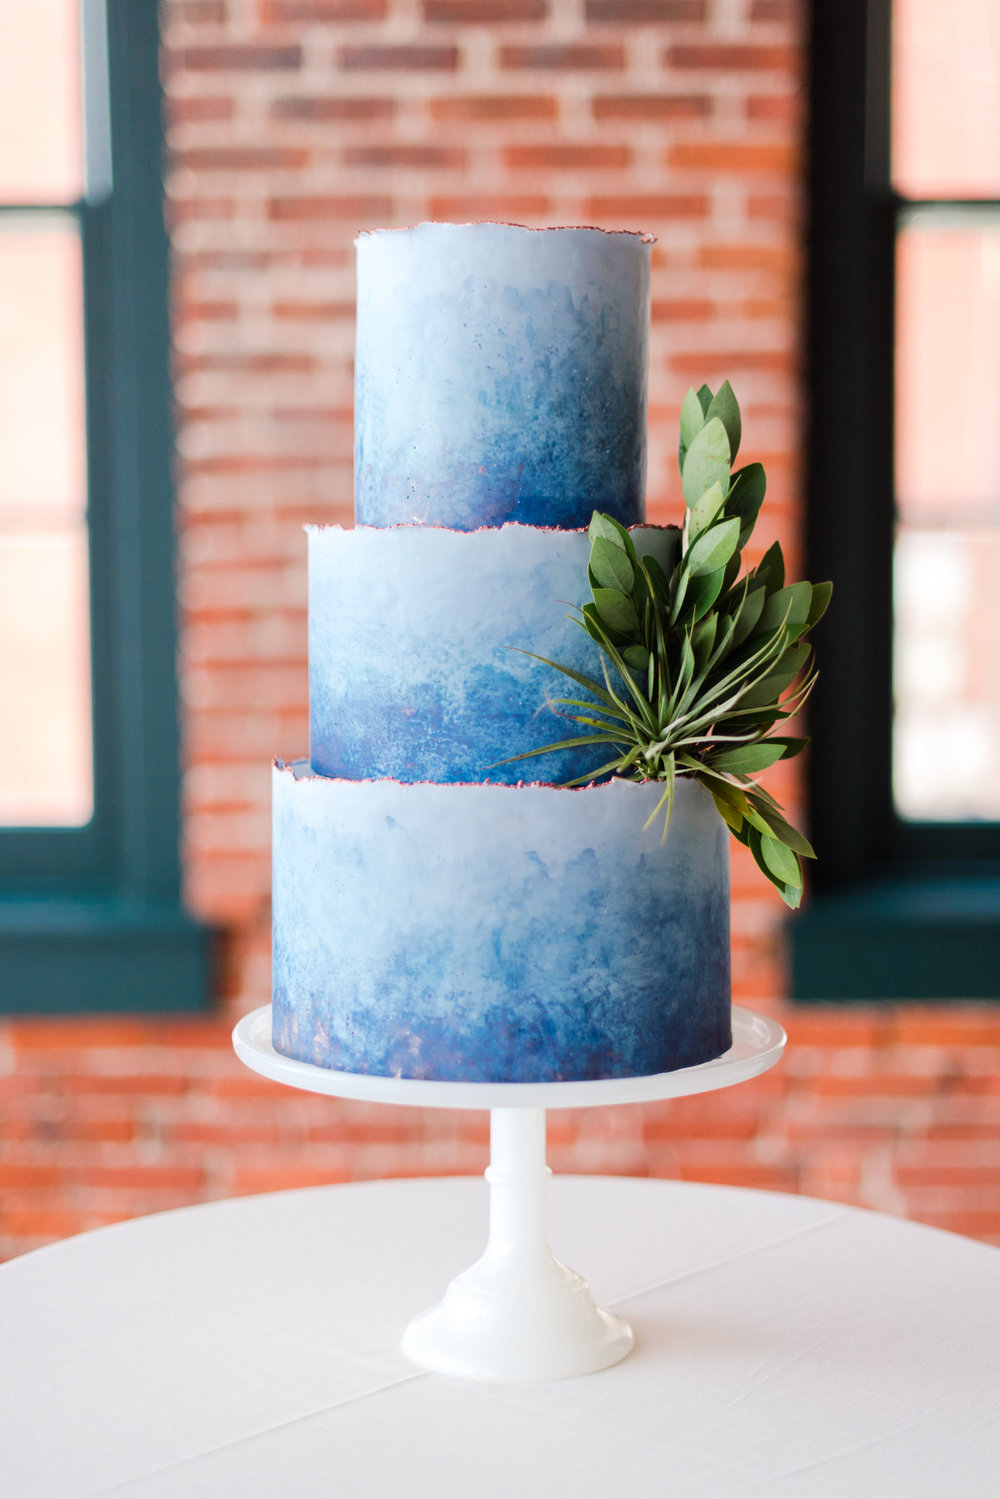 Blue Thistle Cakes - This jaw-dropping cake is just the tip of the iceberg on what owner, Heather, can create. Let me tell ya, I've had my fair share of wedding cake but nothing compares to the deliciousness of Blue Thistle.